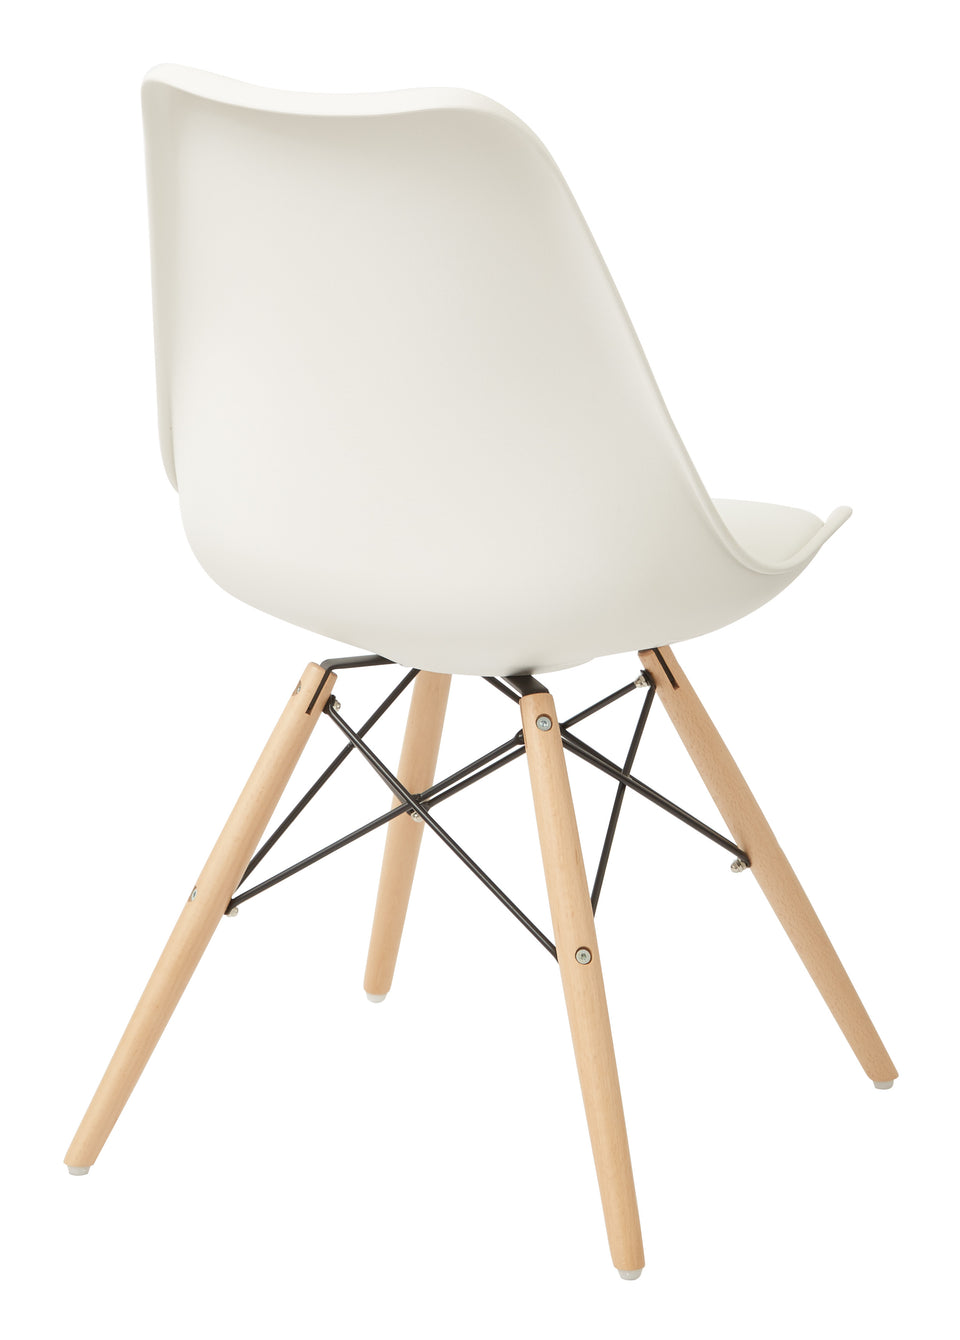 mid century modern aimes white bucket chair with natural post legs scandinavian design inspired from decurban.com back angle view